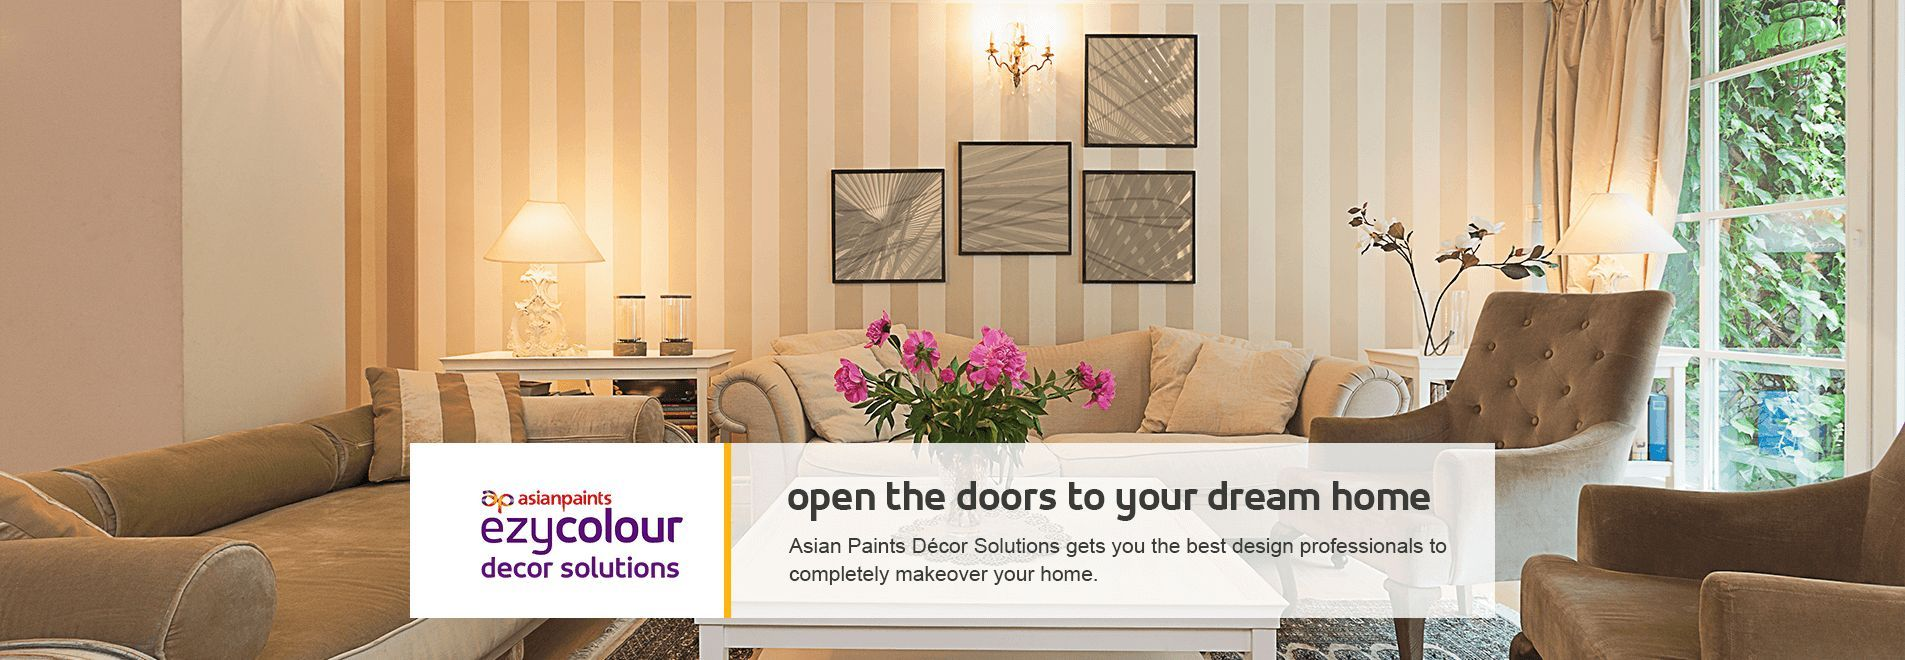 Interior decor solutions for complete home makeover online  asian paints also rh pinterest